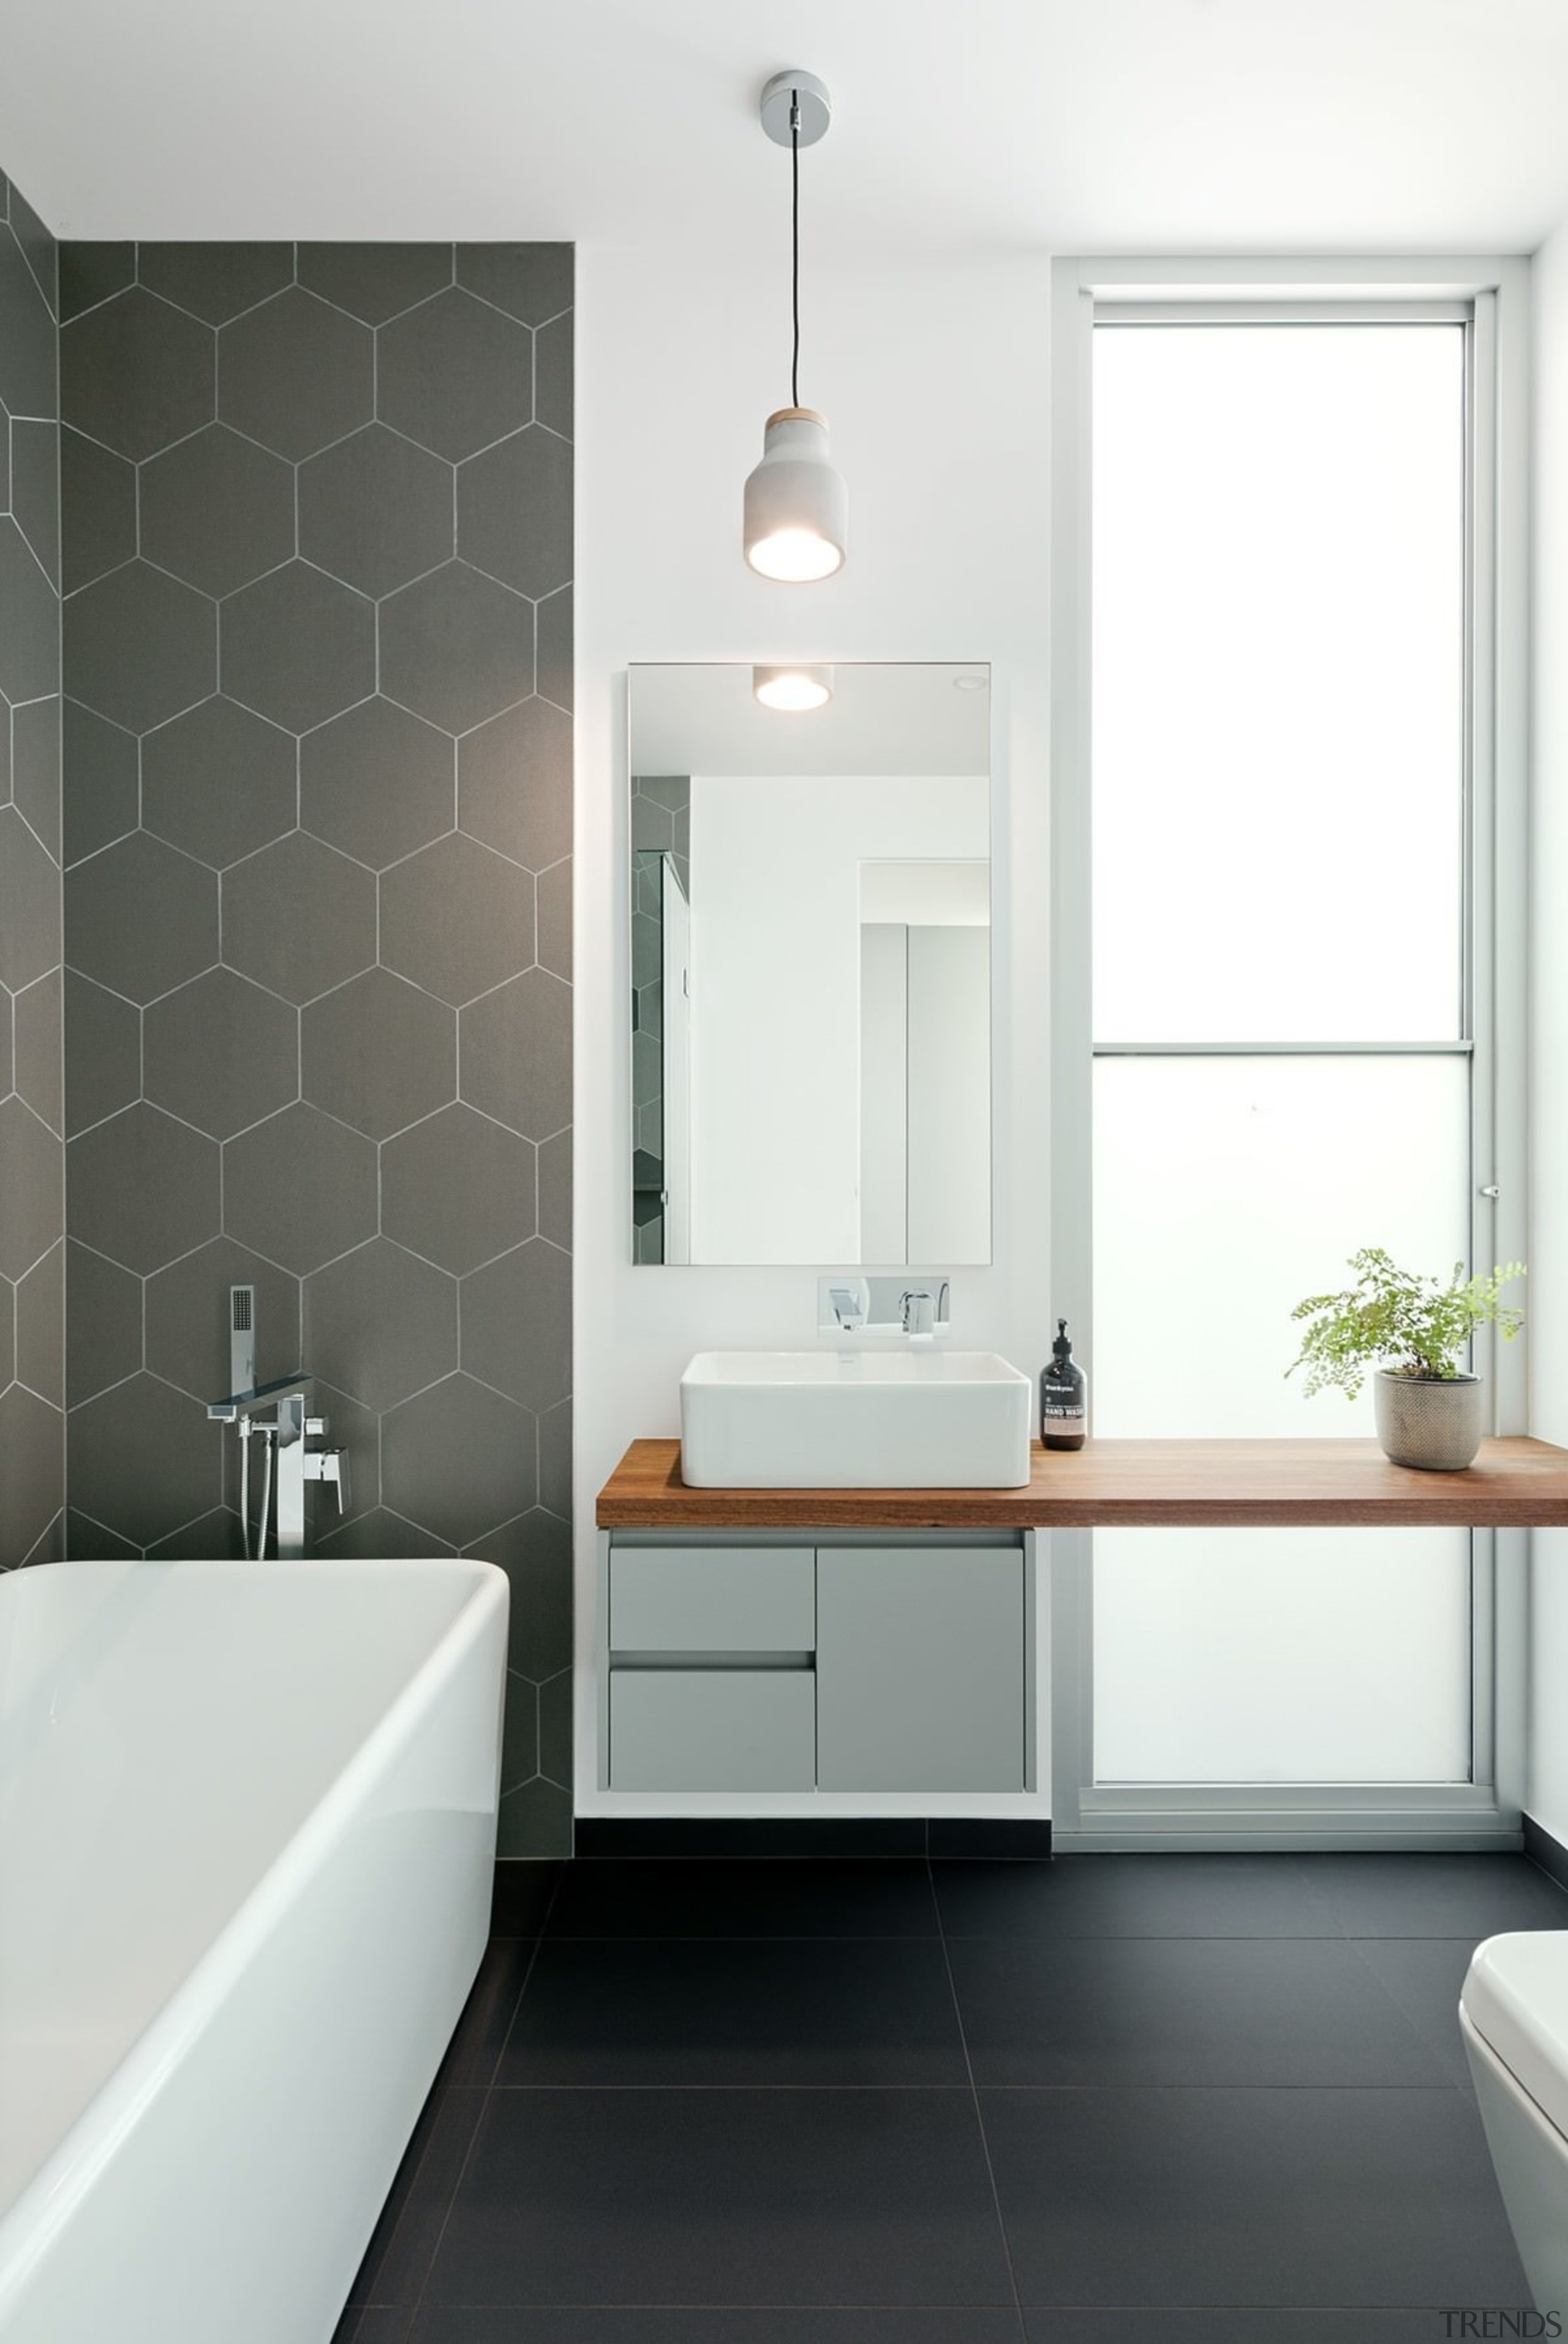 Trends] | Dark tiles contrast with the white walls and ceiling